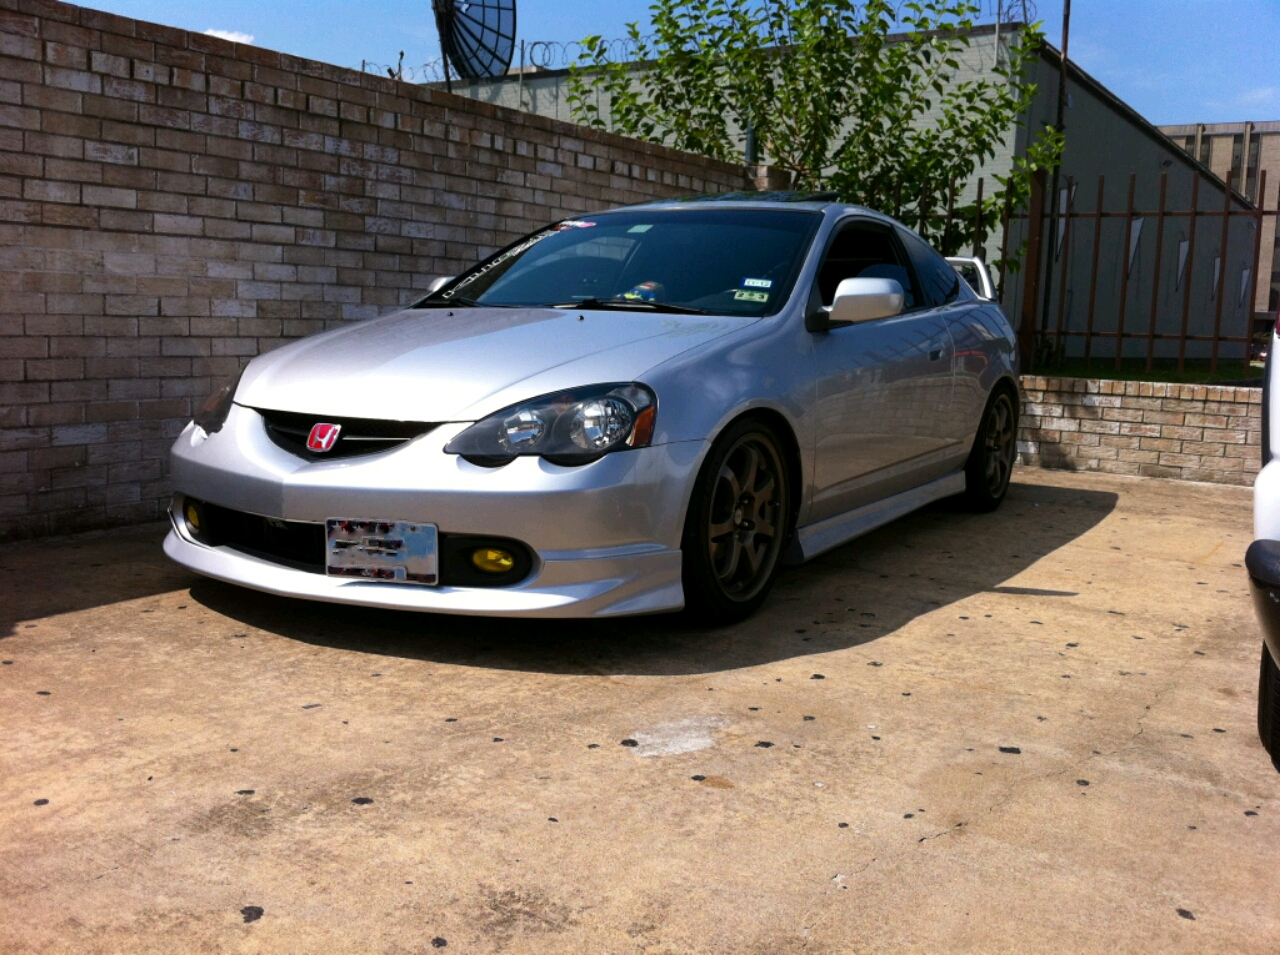 Maxresdefault additionally Maxresdefault also D X X Zyoxx Rims Img furthermore D Honda Prelude Vtec H A Socal Side likewise Maxresdefault. on acura rsx type r